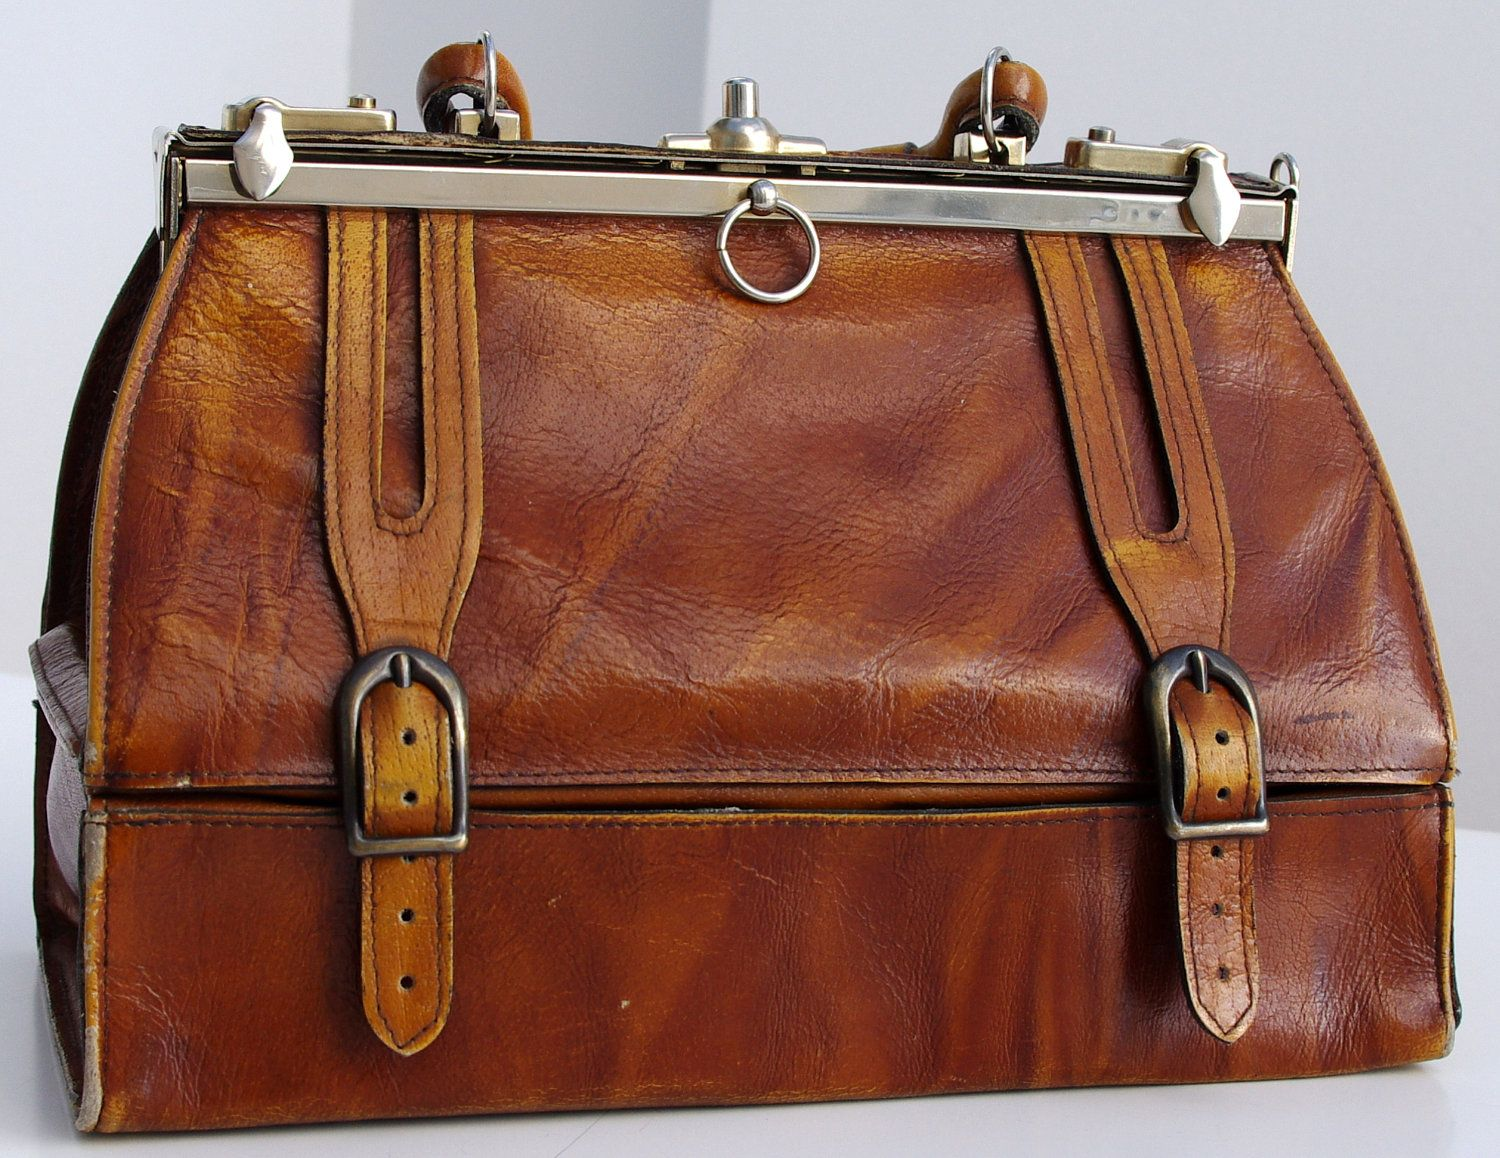 doctors bag - Google Search | bags | Pinterest | Bag, Leather and ...